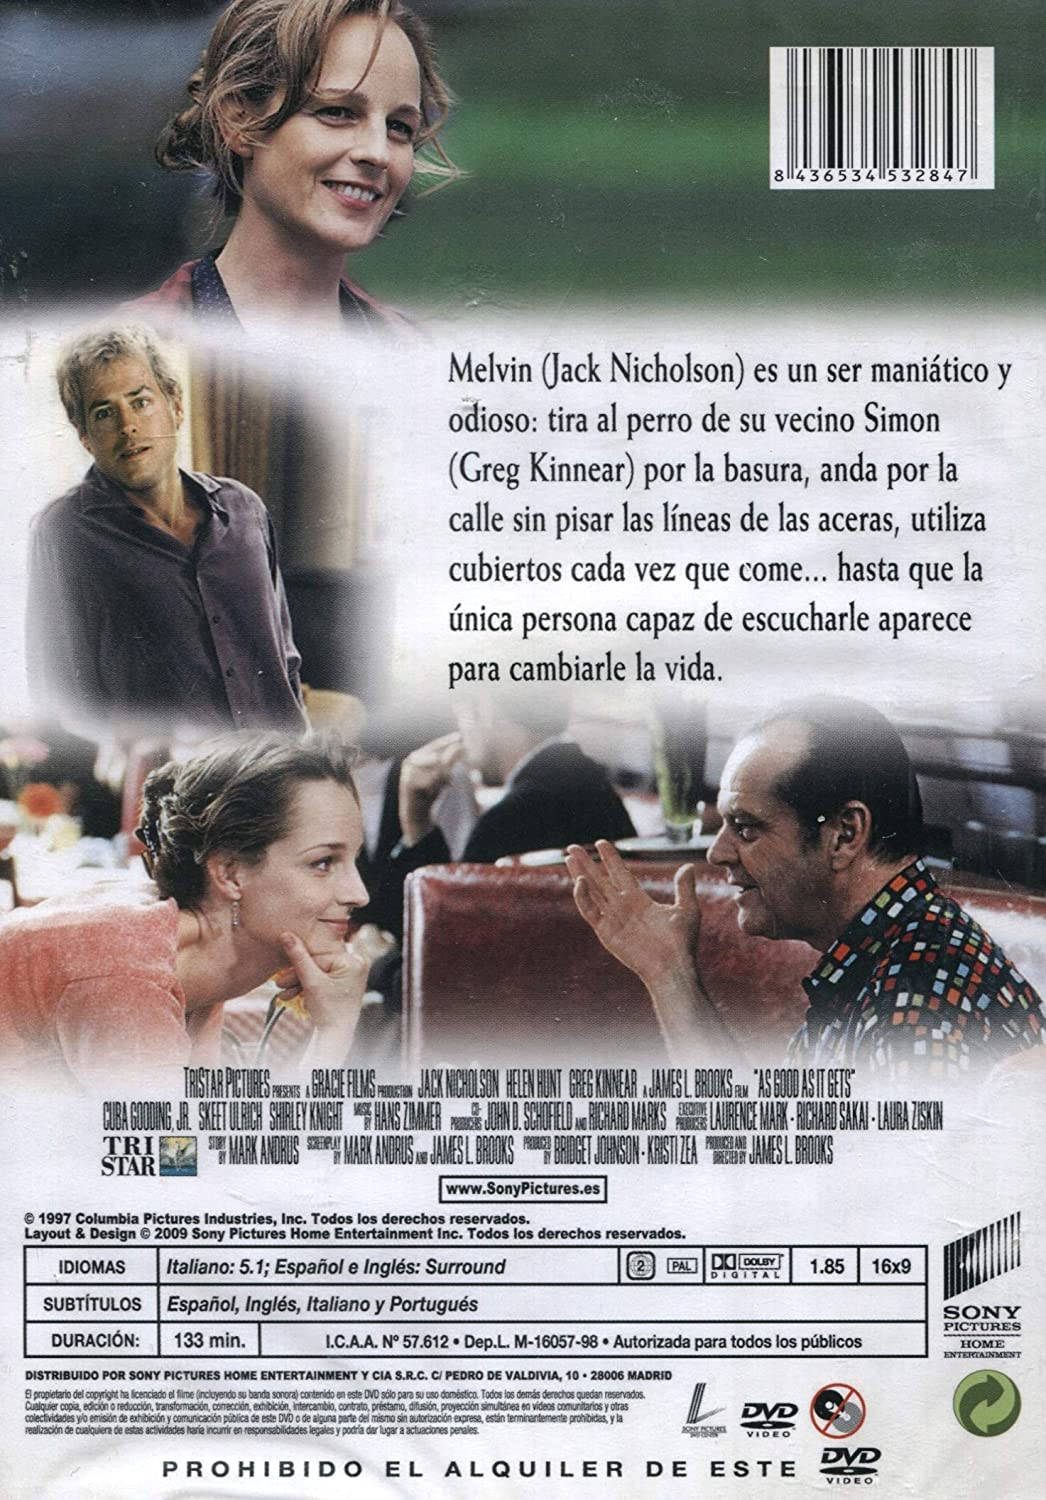 MEJOR ... IMPOSIBLE: Amazon.es: Jack Nicholson, Helen Hunt, Greg Kinnear, Cuba Gooding Jr., Skeet Ulrich, James L. Brooks: Cine y Series TV